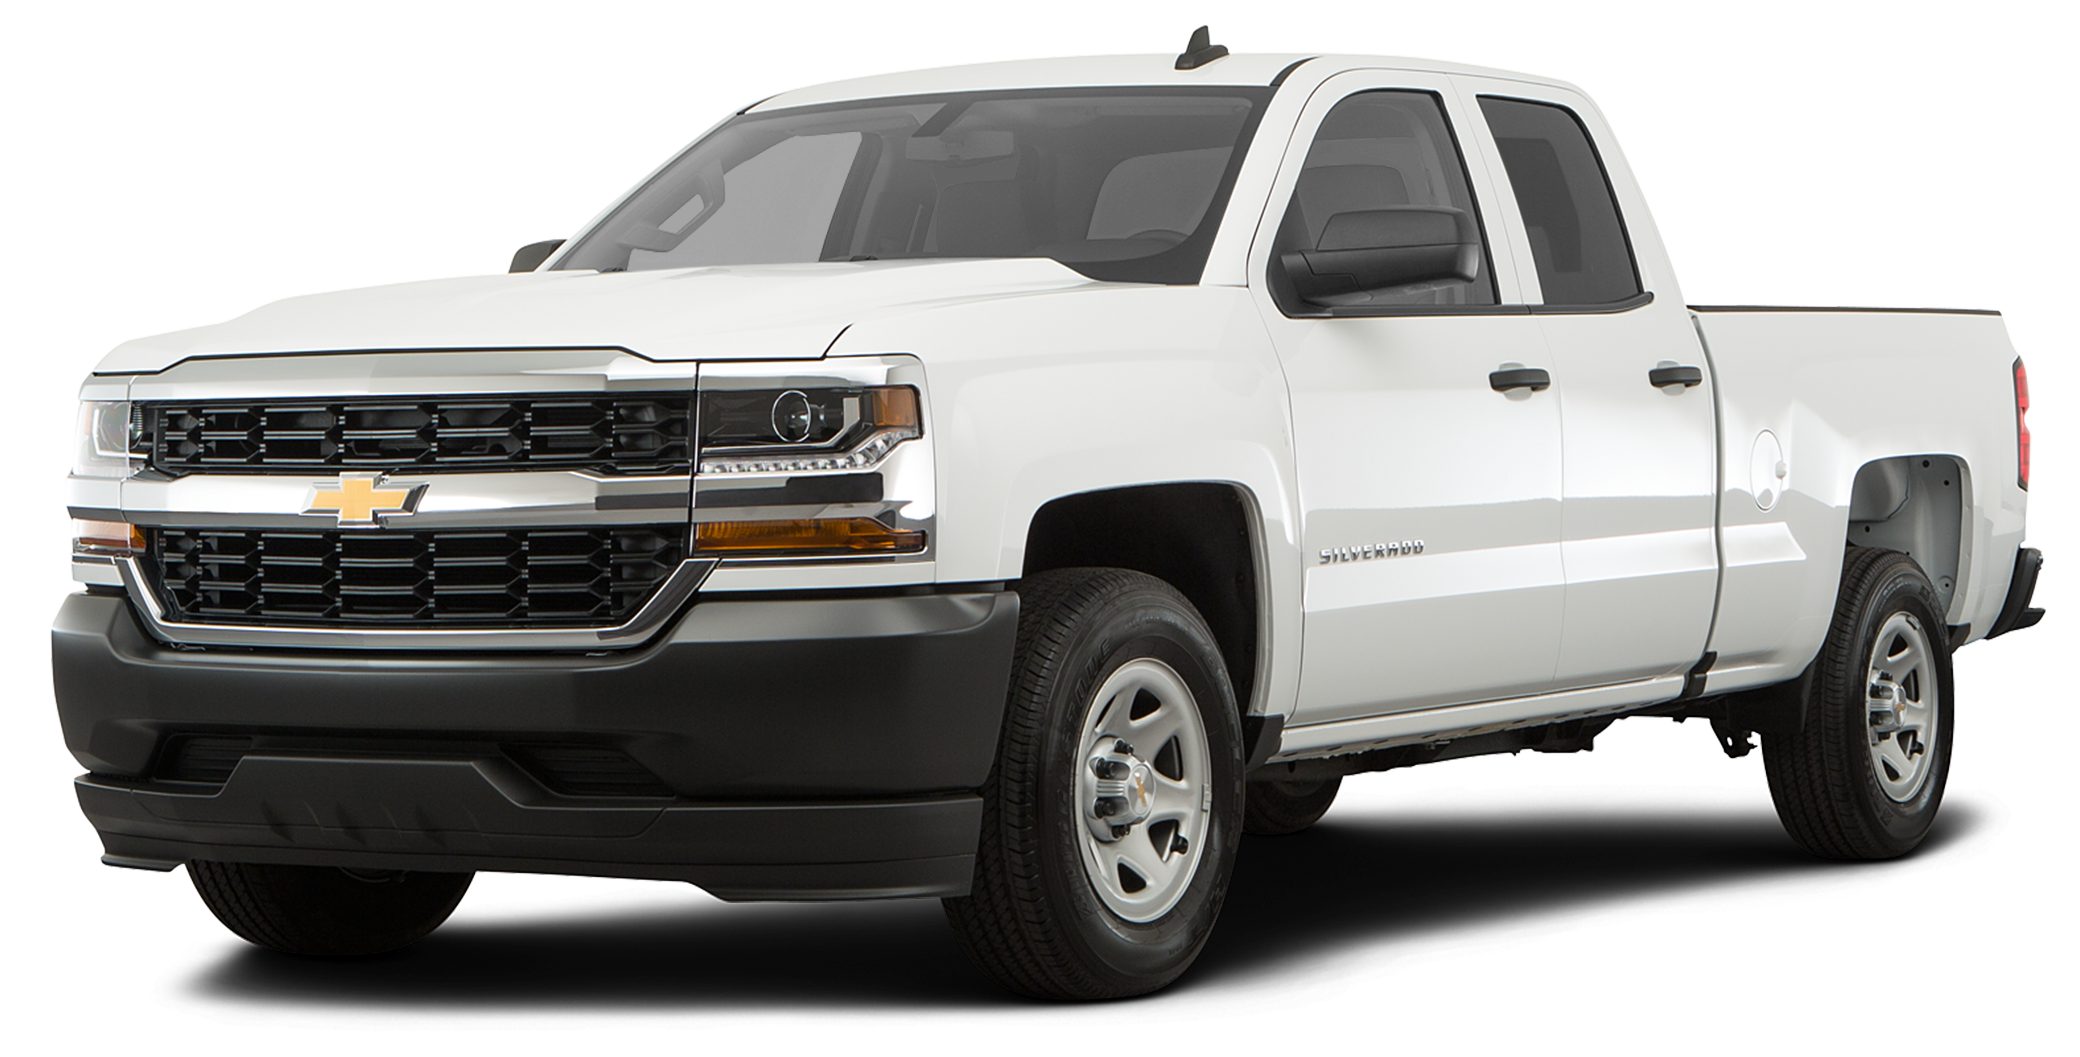 2019 chevrolet silverado 1500 incentives specials. Black Bedroom Furniture Sets. Home Design Ideas